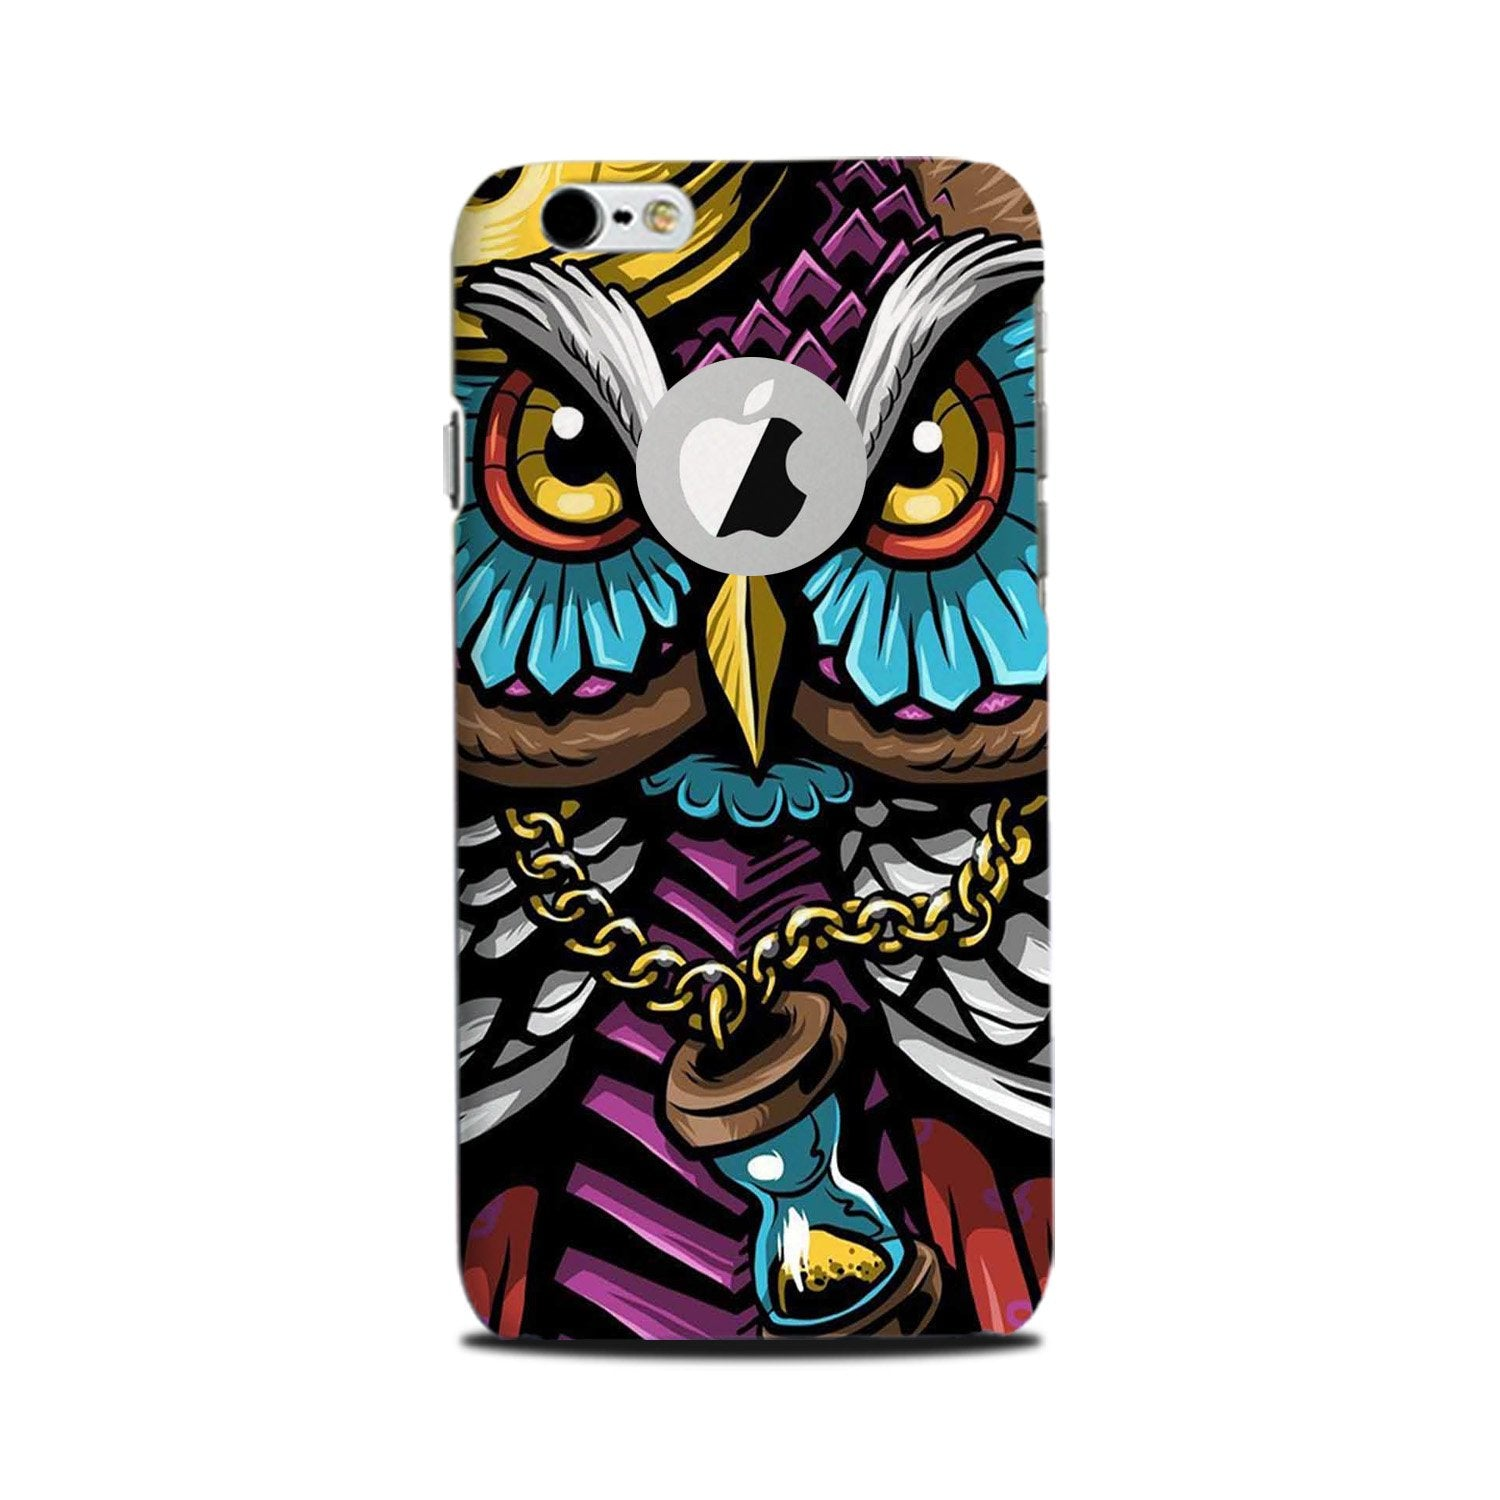 Owl Mobile Back Case for iPhone 6 Plus / 6s Plus Logo Cut  (Design - 359)